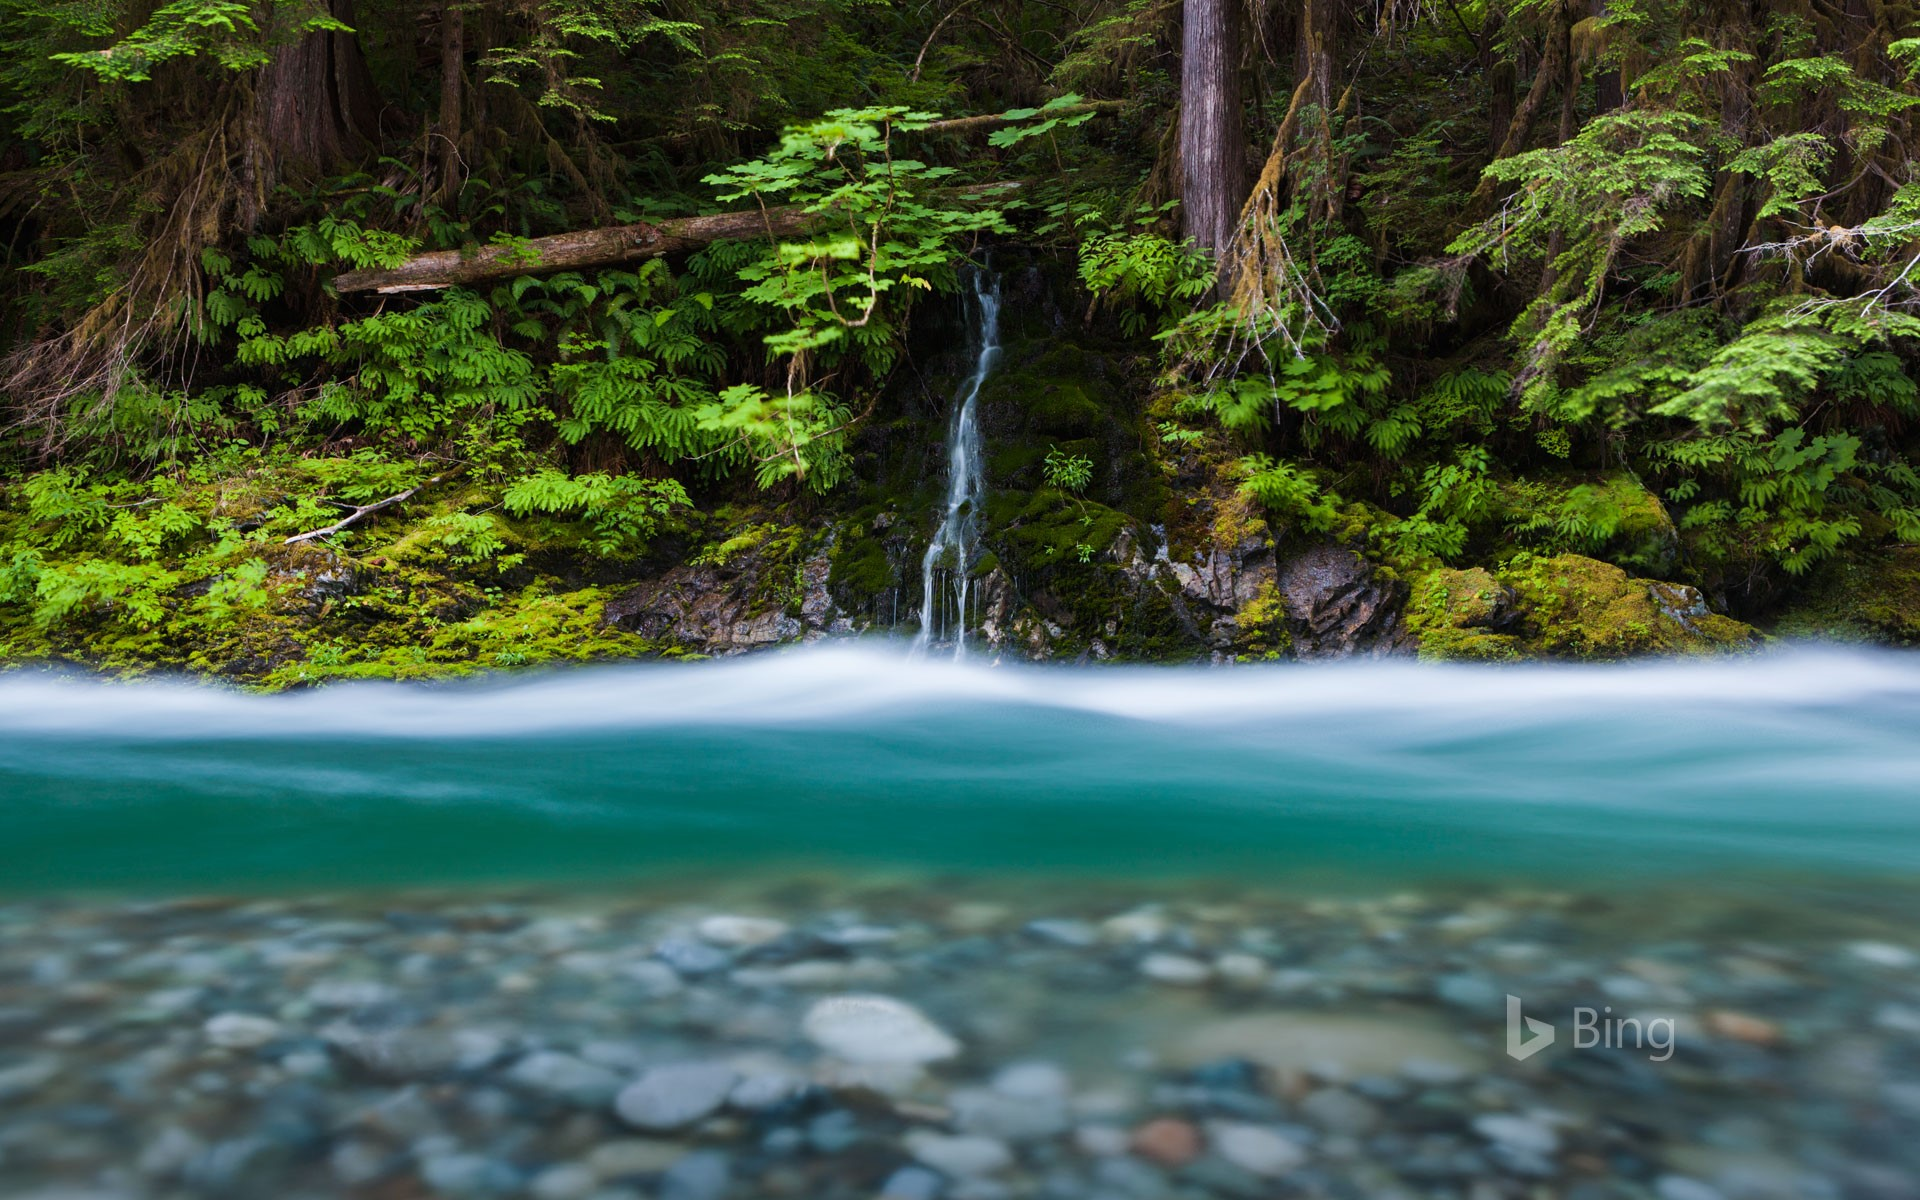 Bacon Creek, Mount Baker-Snoqualmie National Forest, Washington